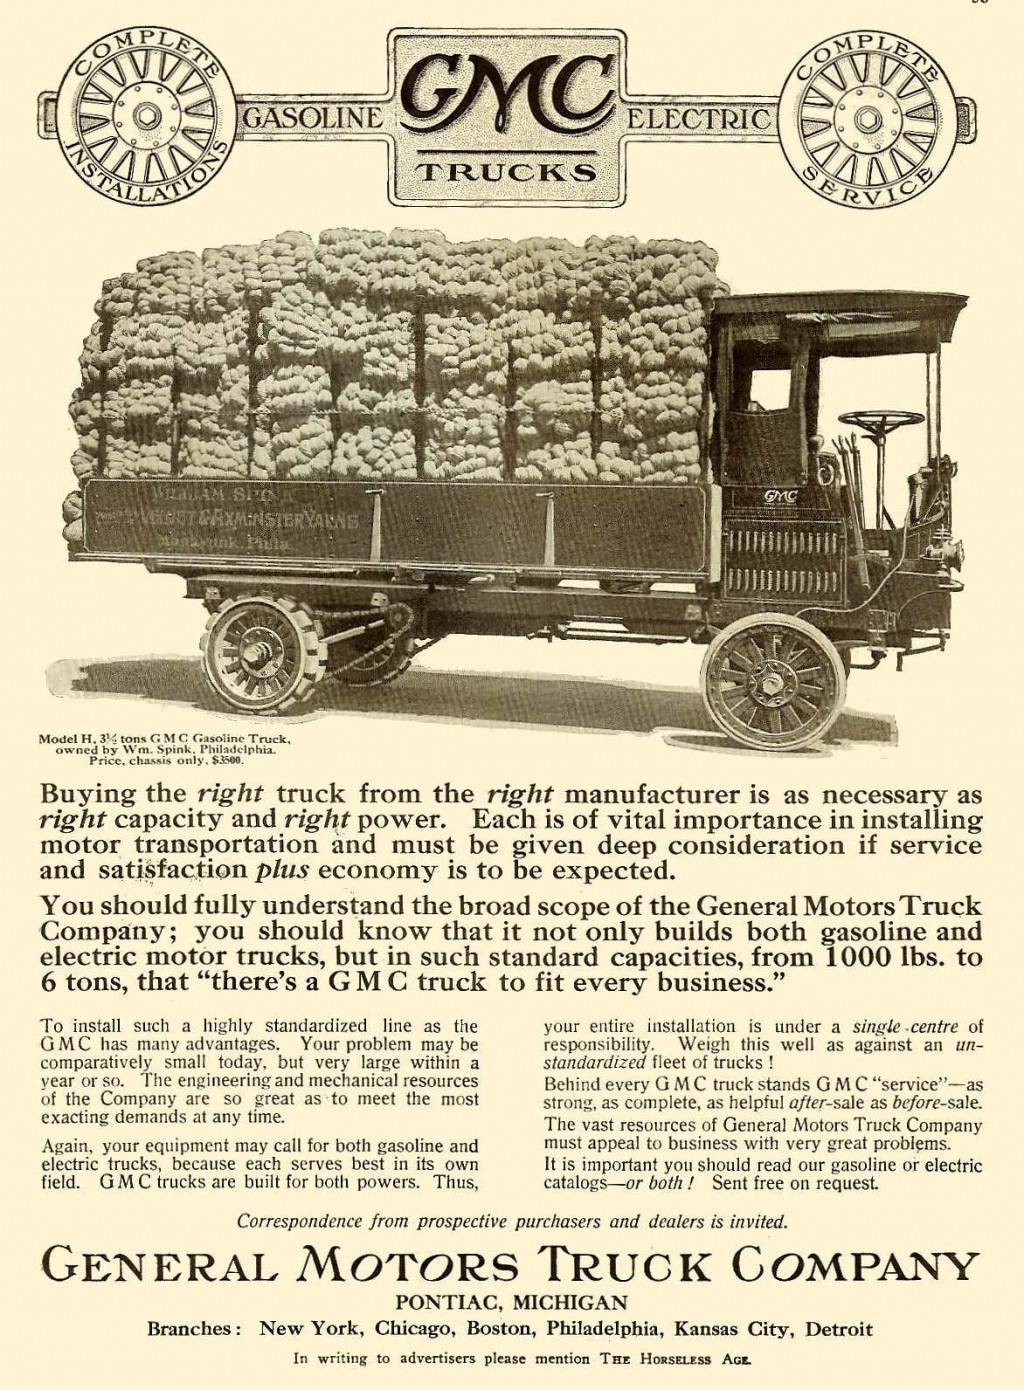 1912 GMC truck advertisement